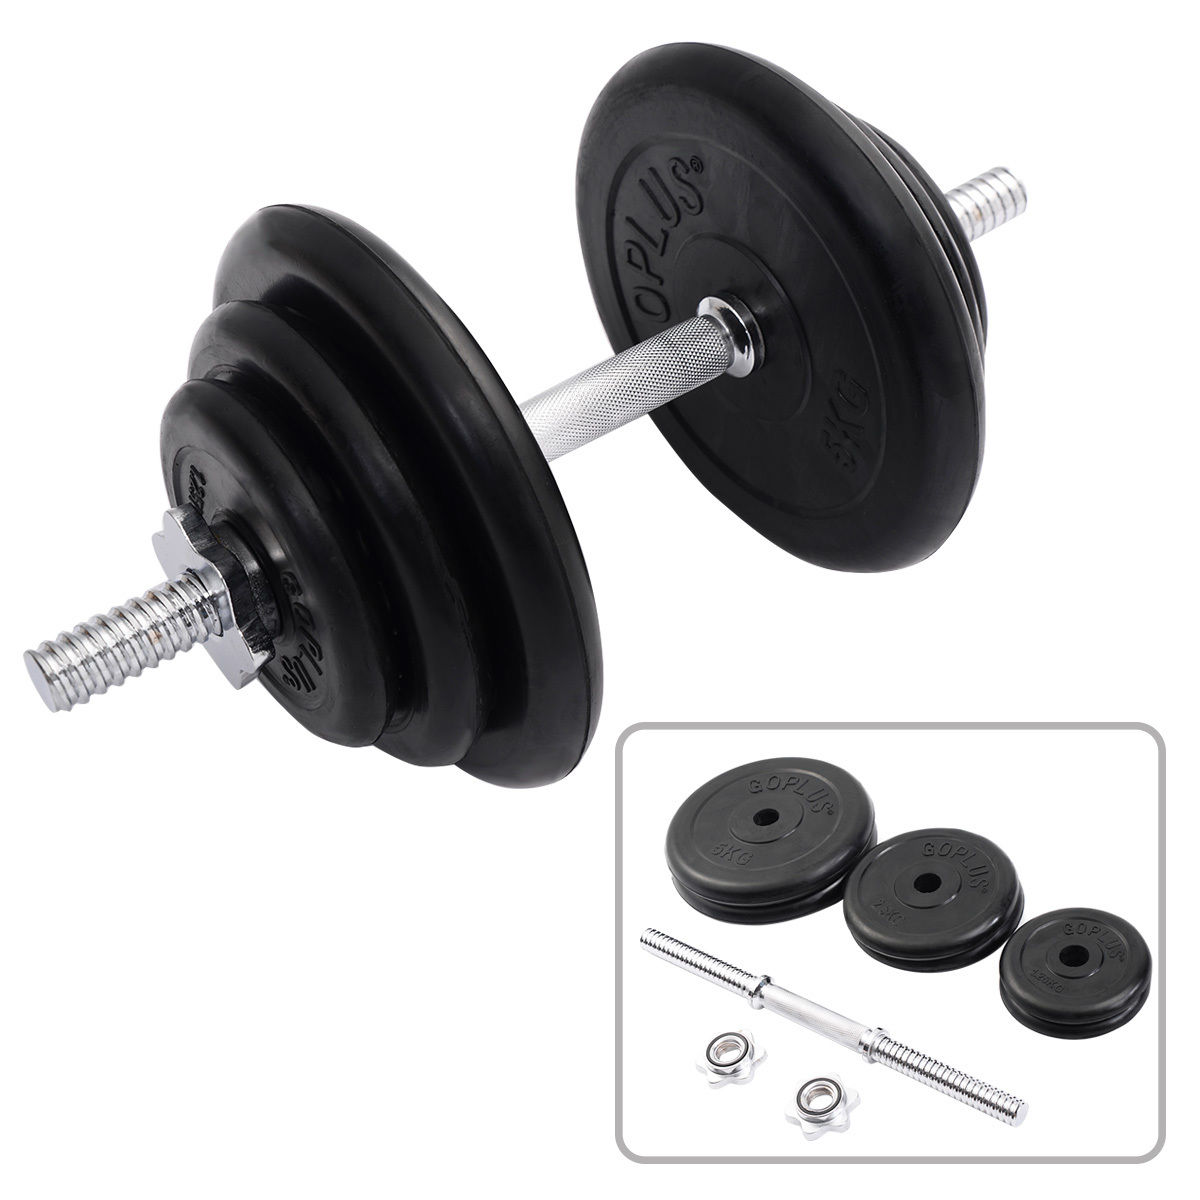 Costway Weight Dumbbell Set 44 Lb Adjustable Cap Gym Barbell Plates Body Workout